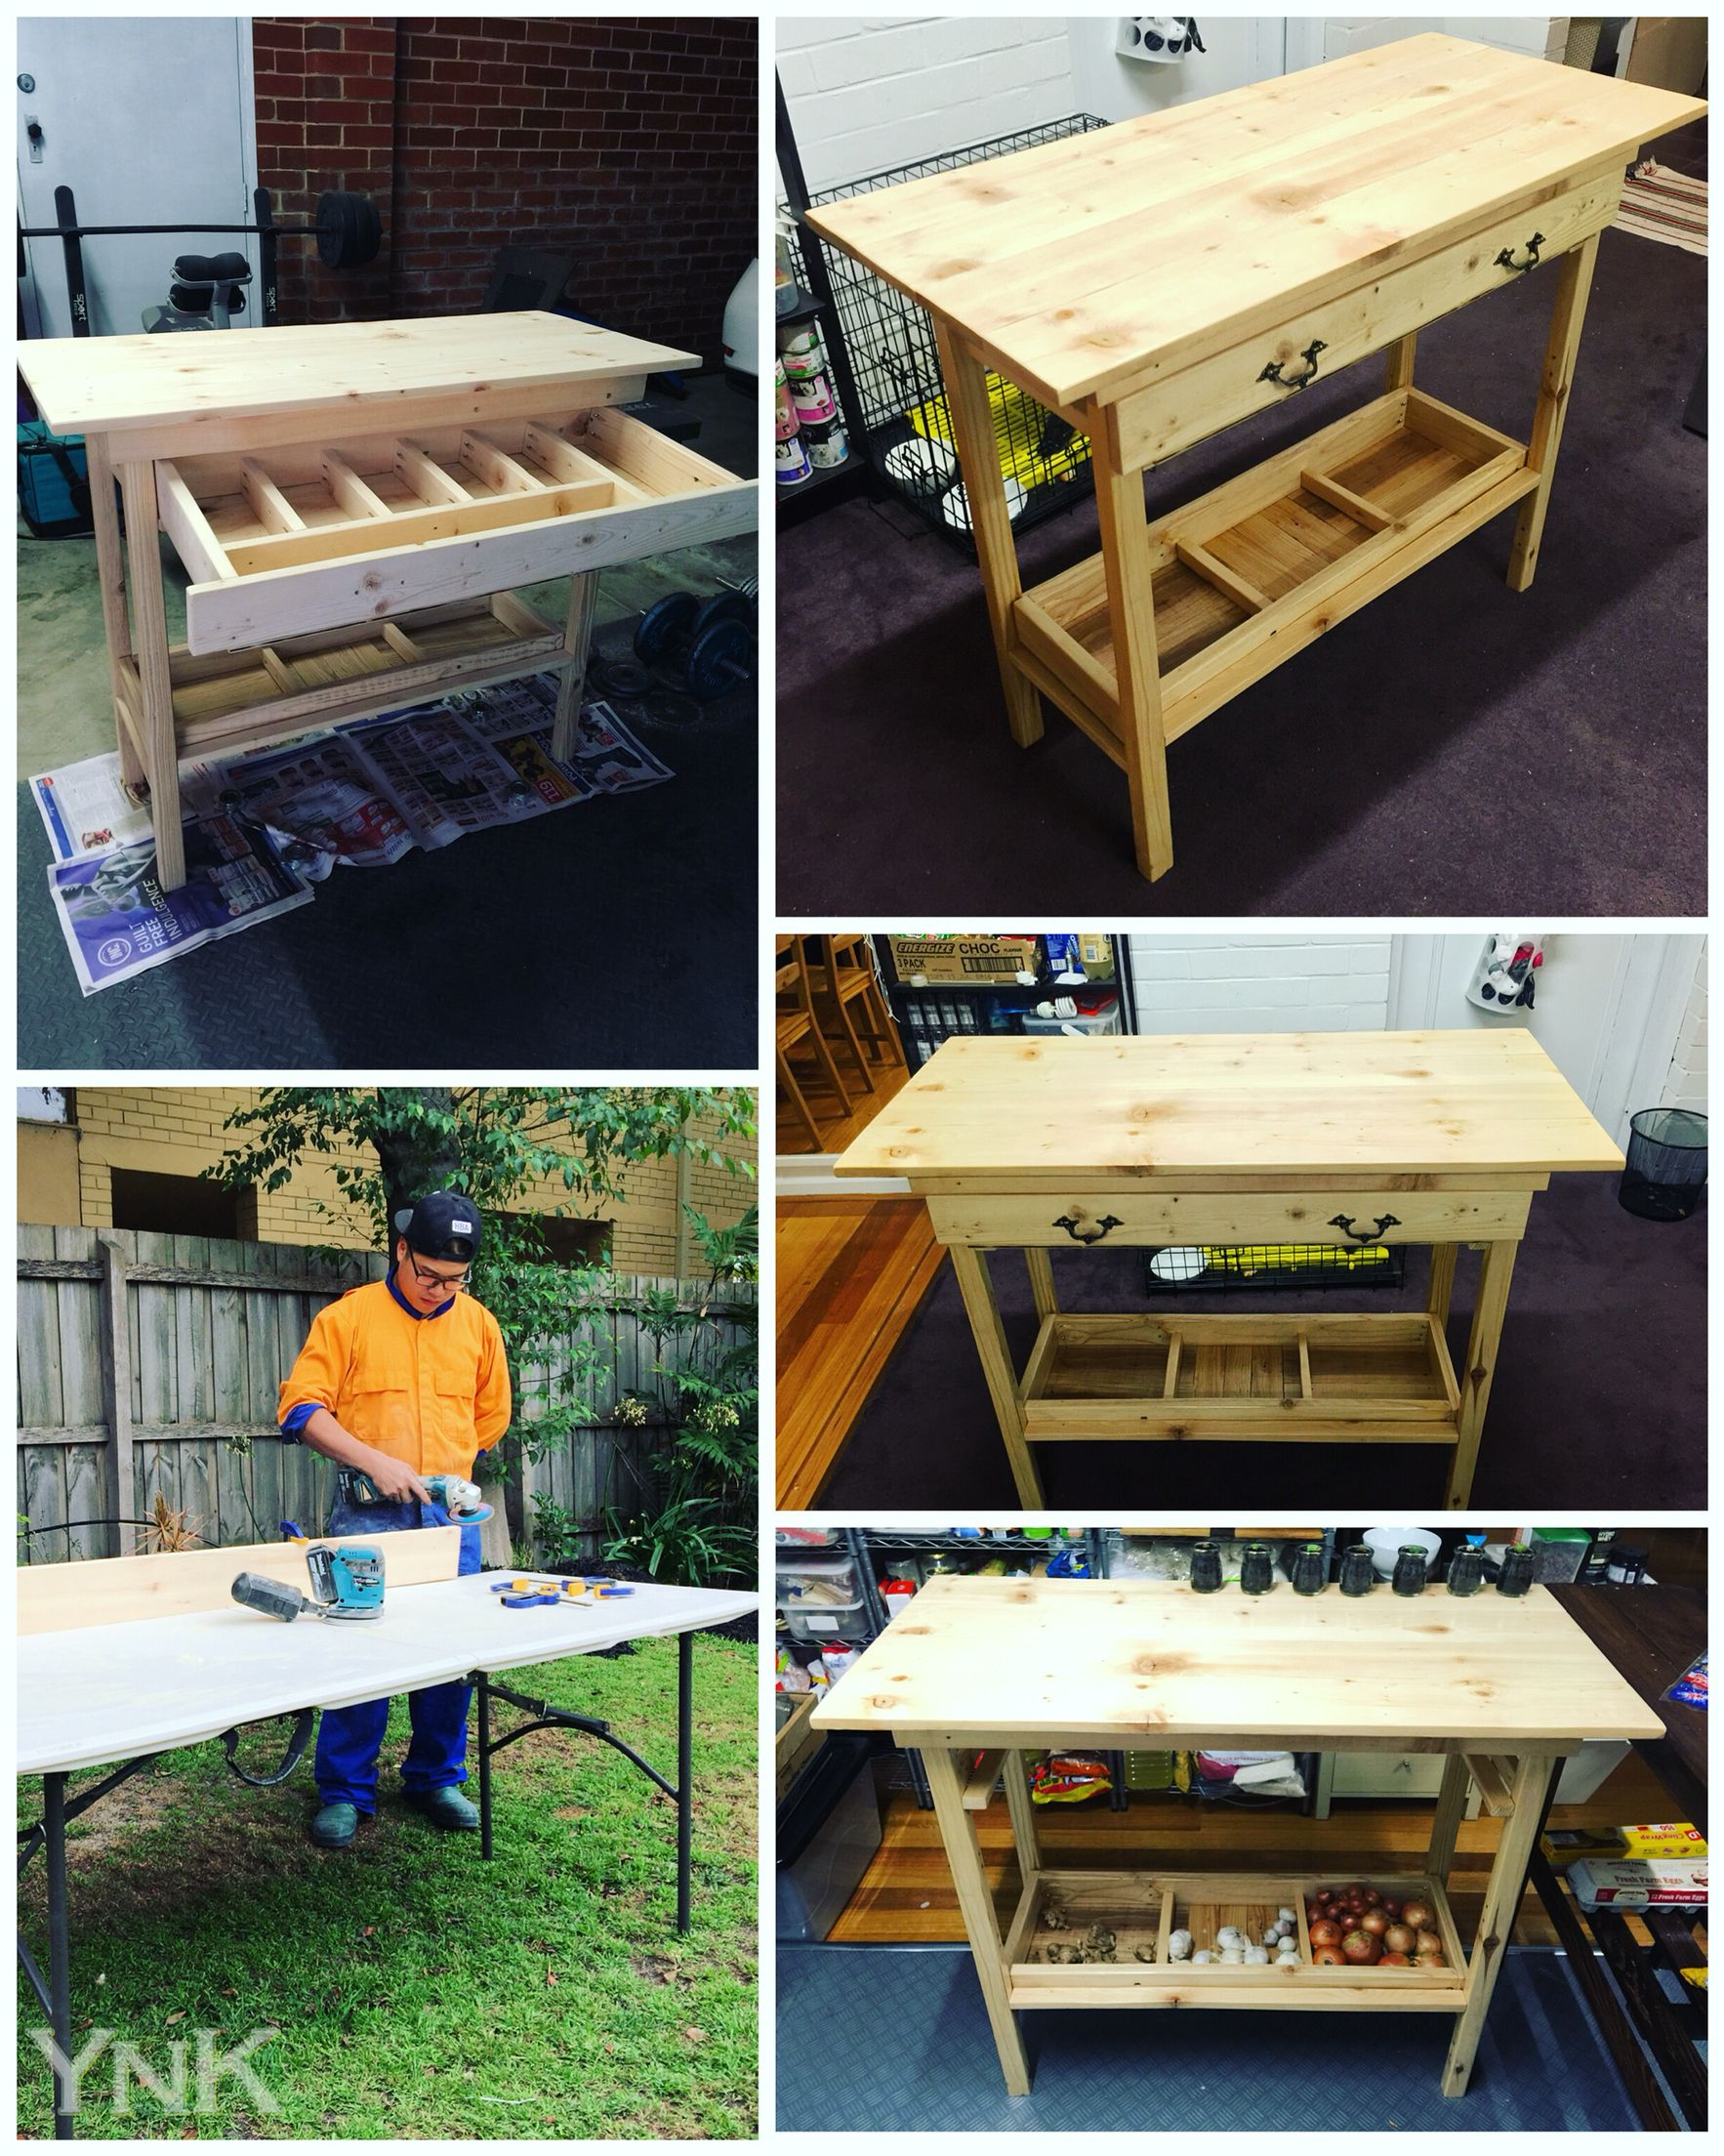 Kitchen Work Bench V2 0 Food Prep Table Diy Project Recycle Wooden Pallets 35 Hour Part Time Kitchen Work Tables Kitchen Prep Table Woodworking Table